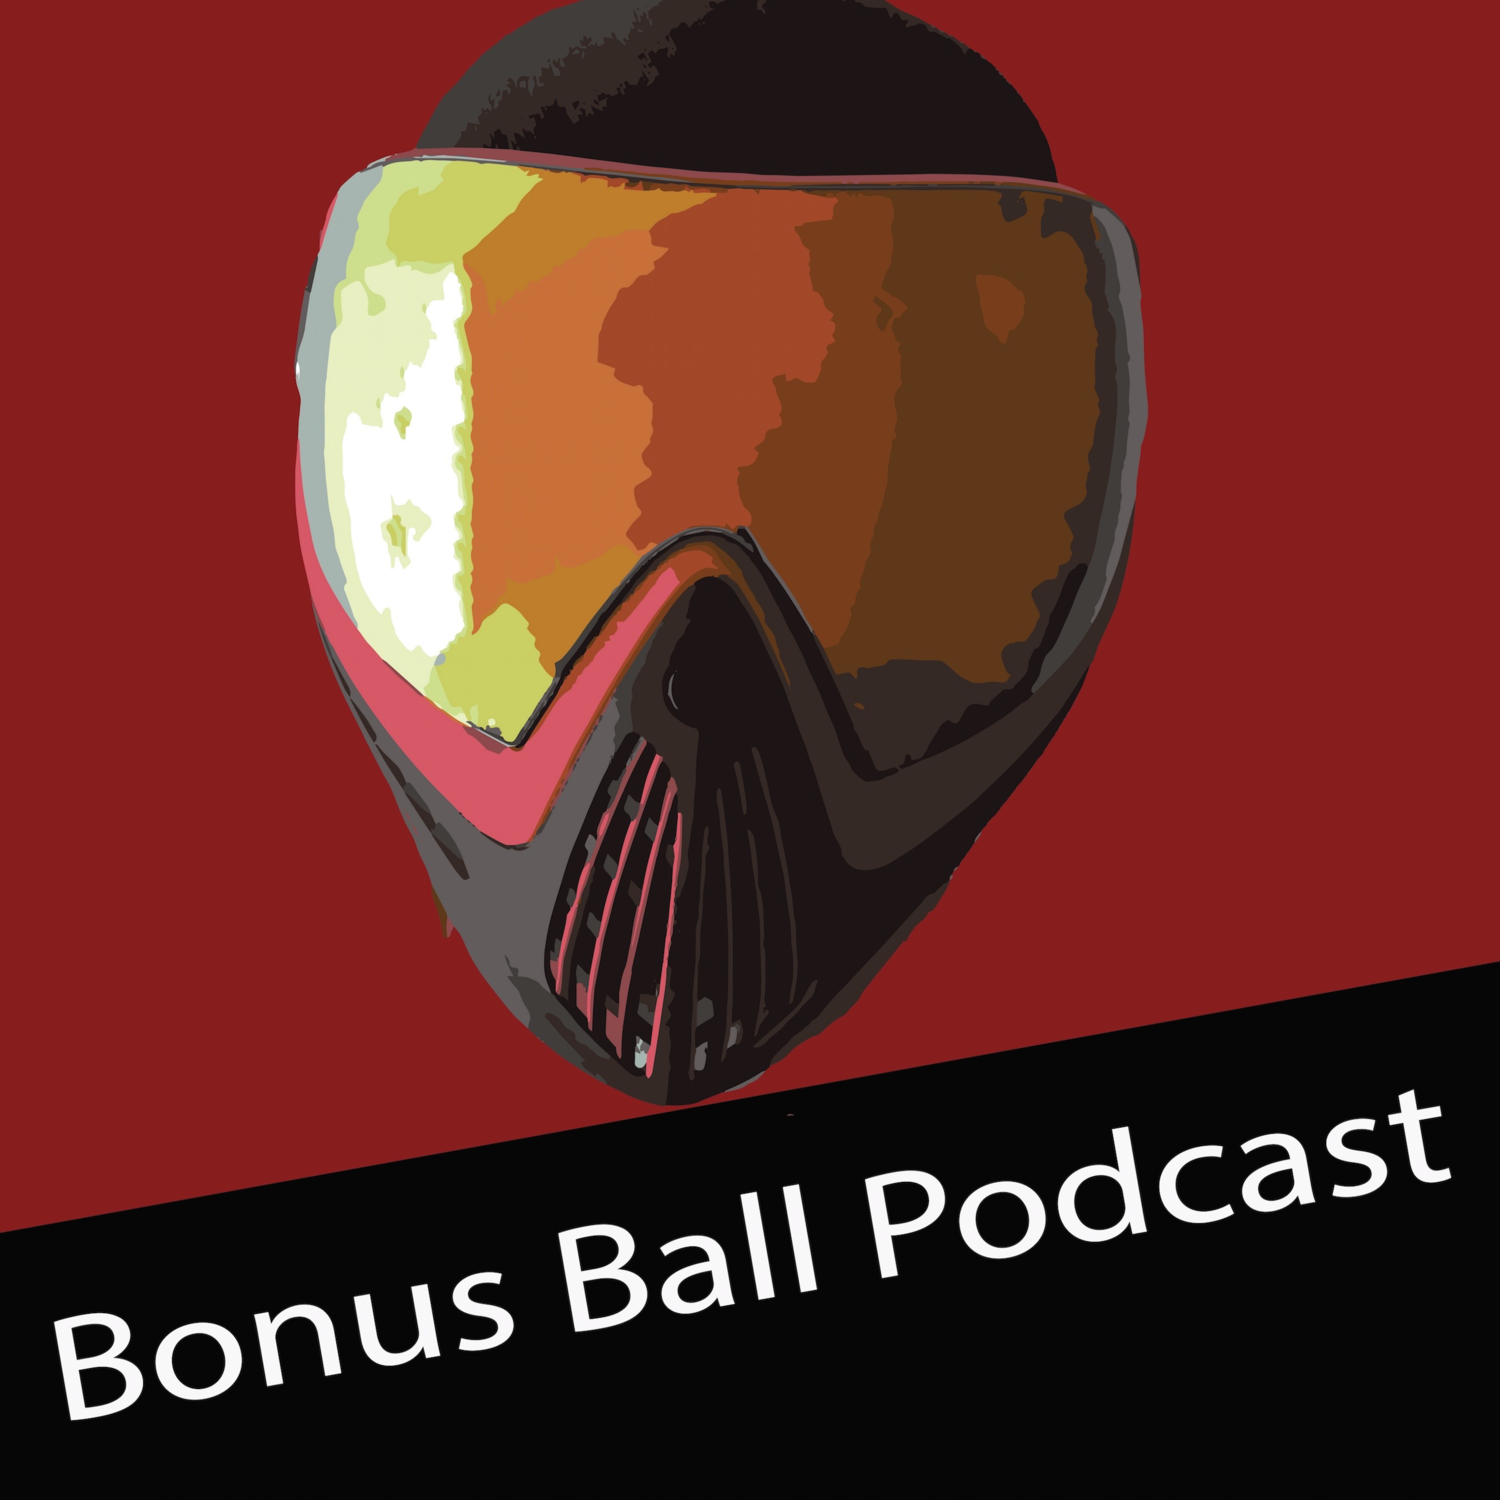 Bonus Ball Podcast - Bonus Ball Podcast